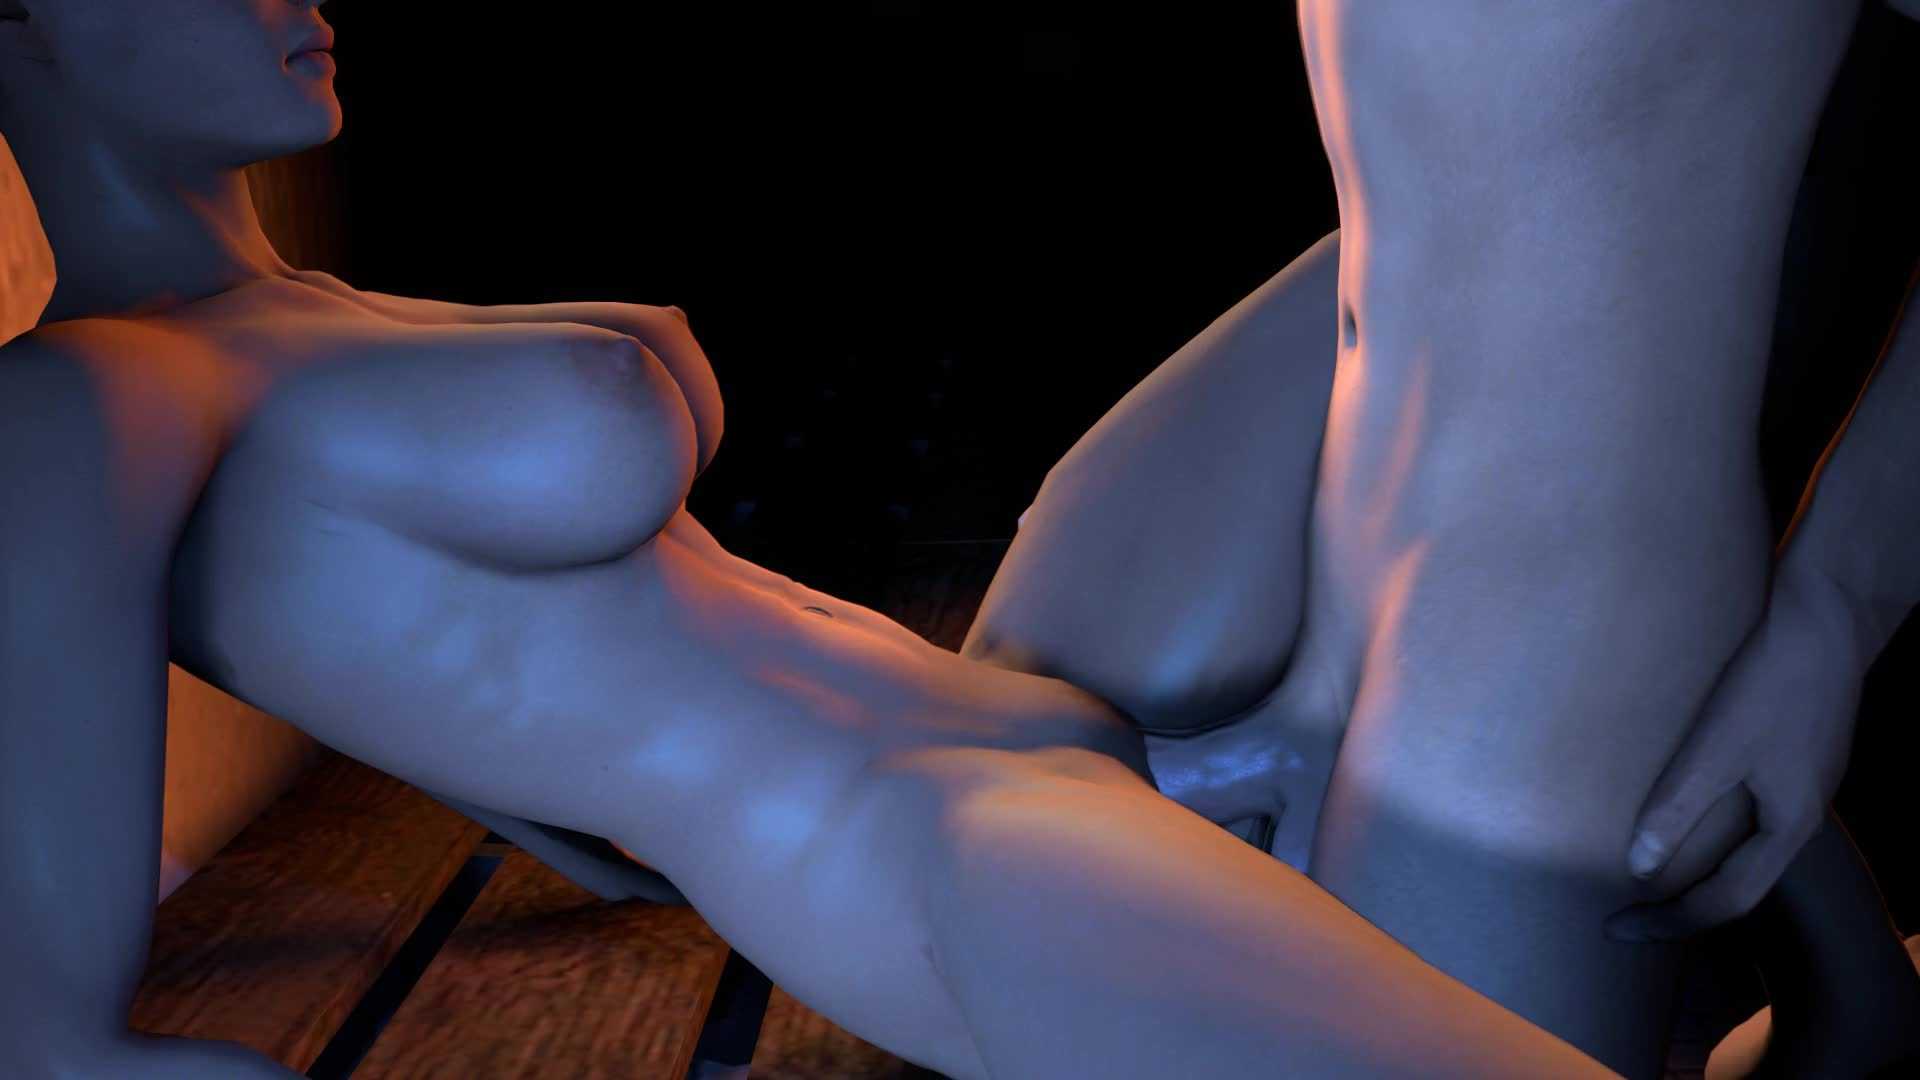 3d animation porn mortal kombat exposed photo